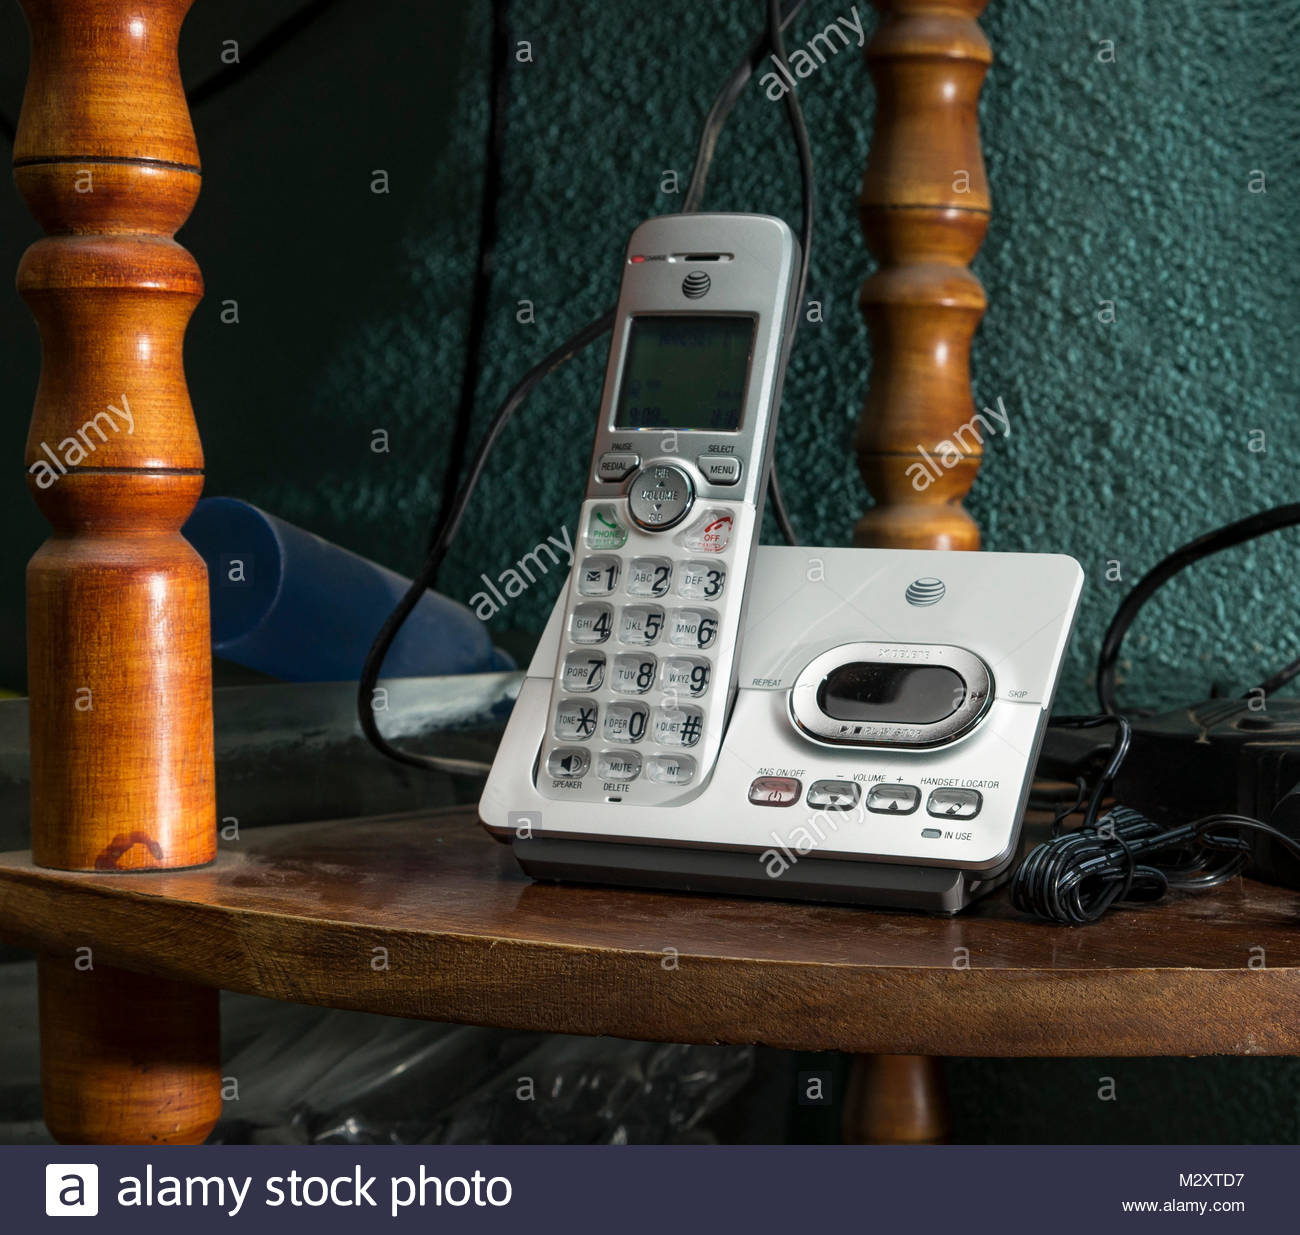 Landline Phone Stock Photos & Landline Phone Stock Images